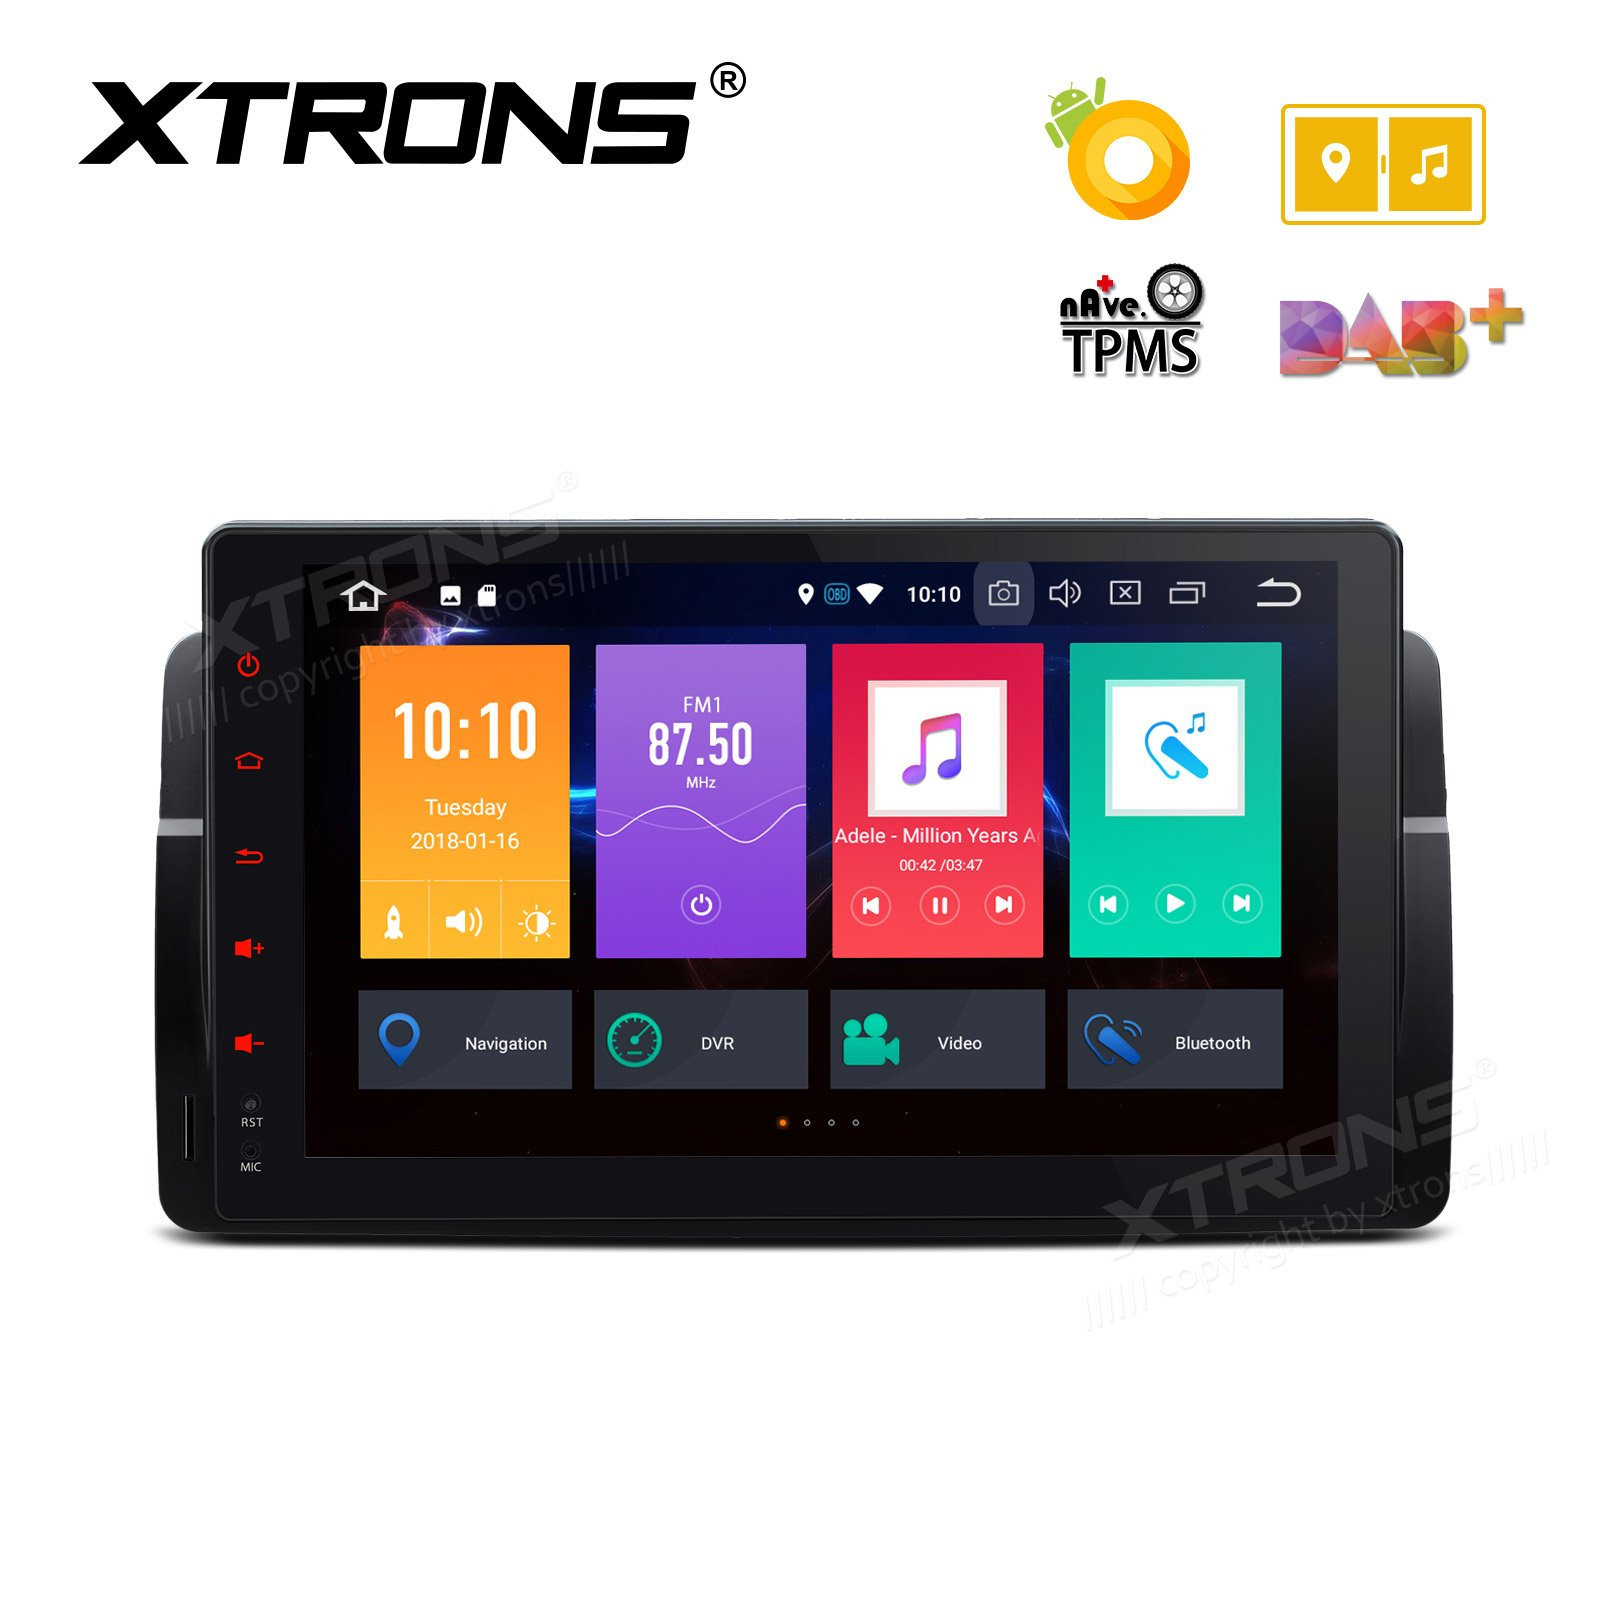 XTRONS 9'' Android 8.0 Octa Core 4G RAM 32G ROM HD Digital Multi-touch Screen OBD2 DVR Car Stereo Player Tire Pressure Monitoring Wifi OBD2 NO-DVD for BMW E46 3er M3 Rover75 MG ZT